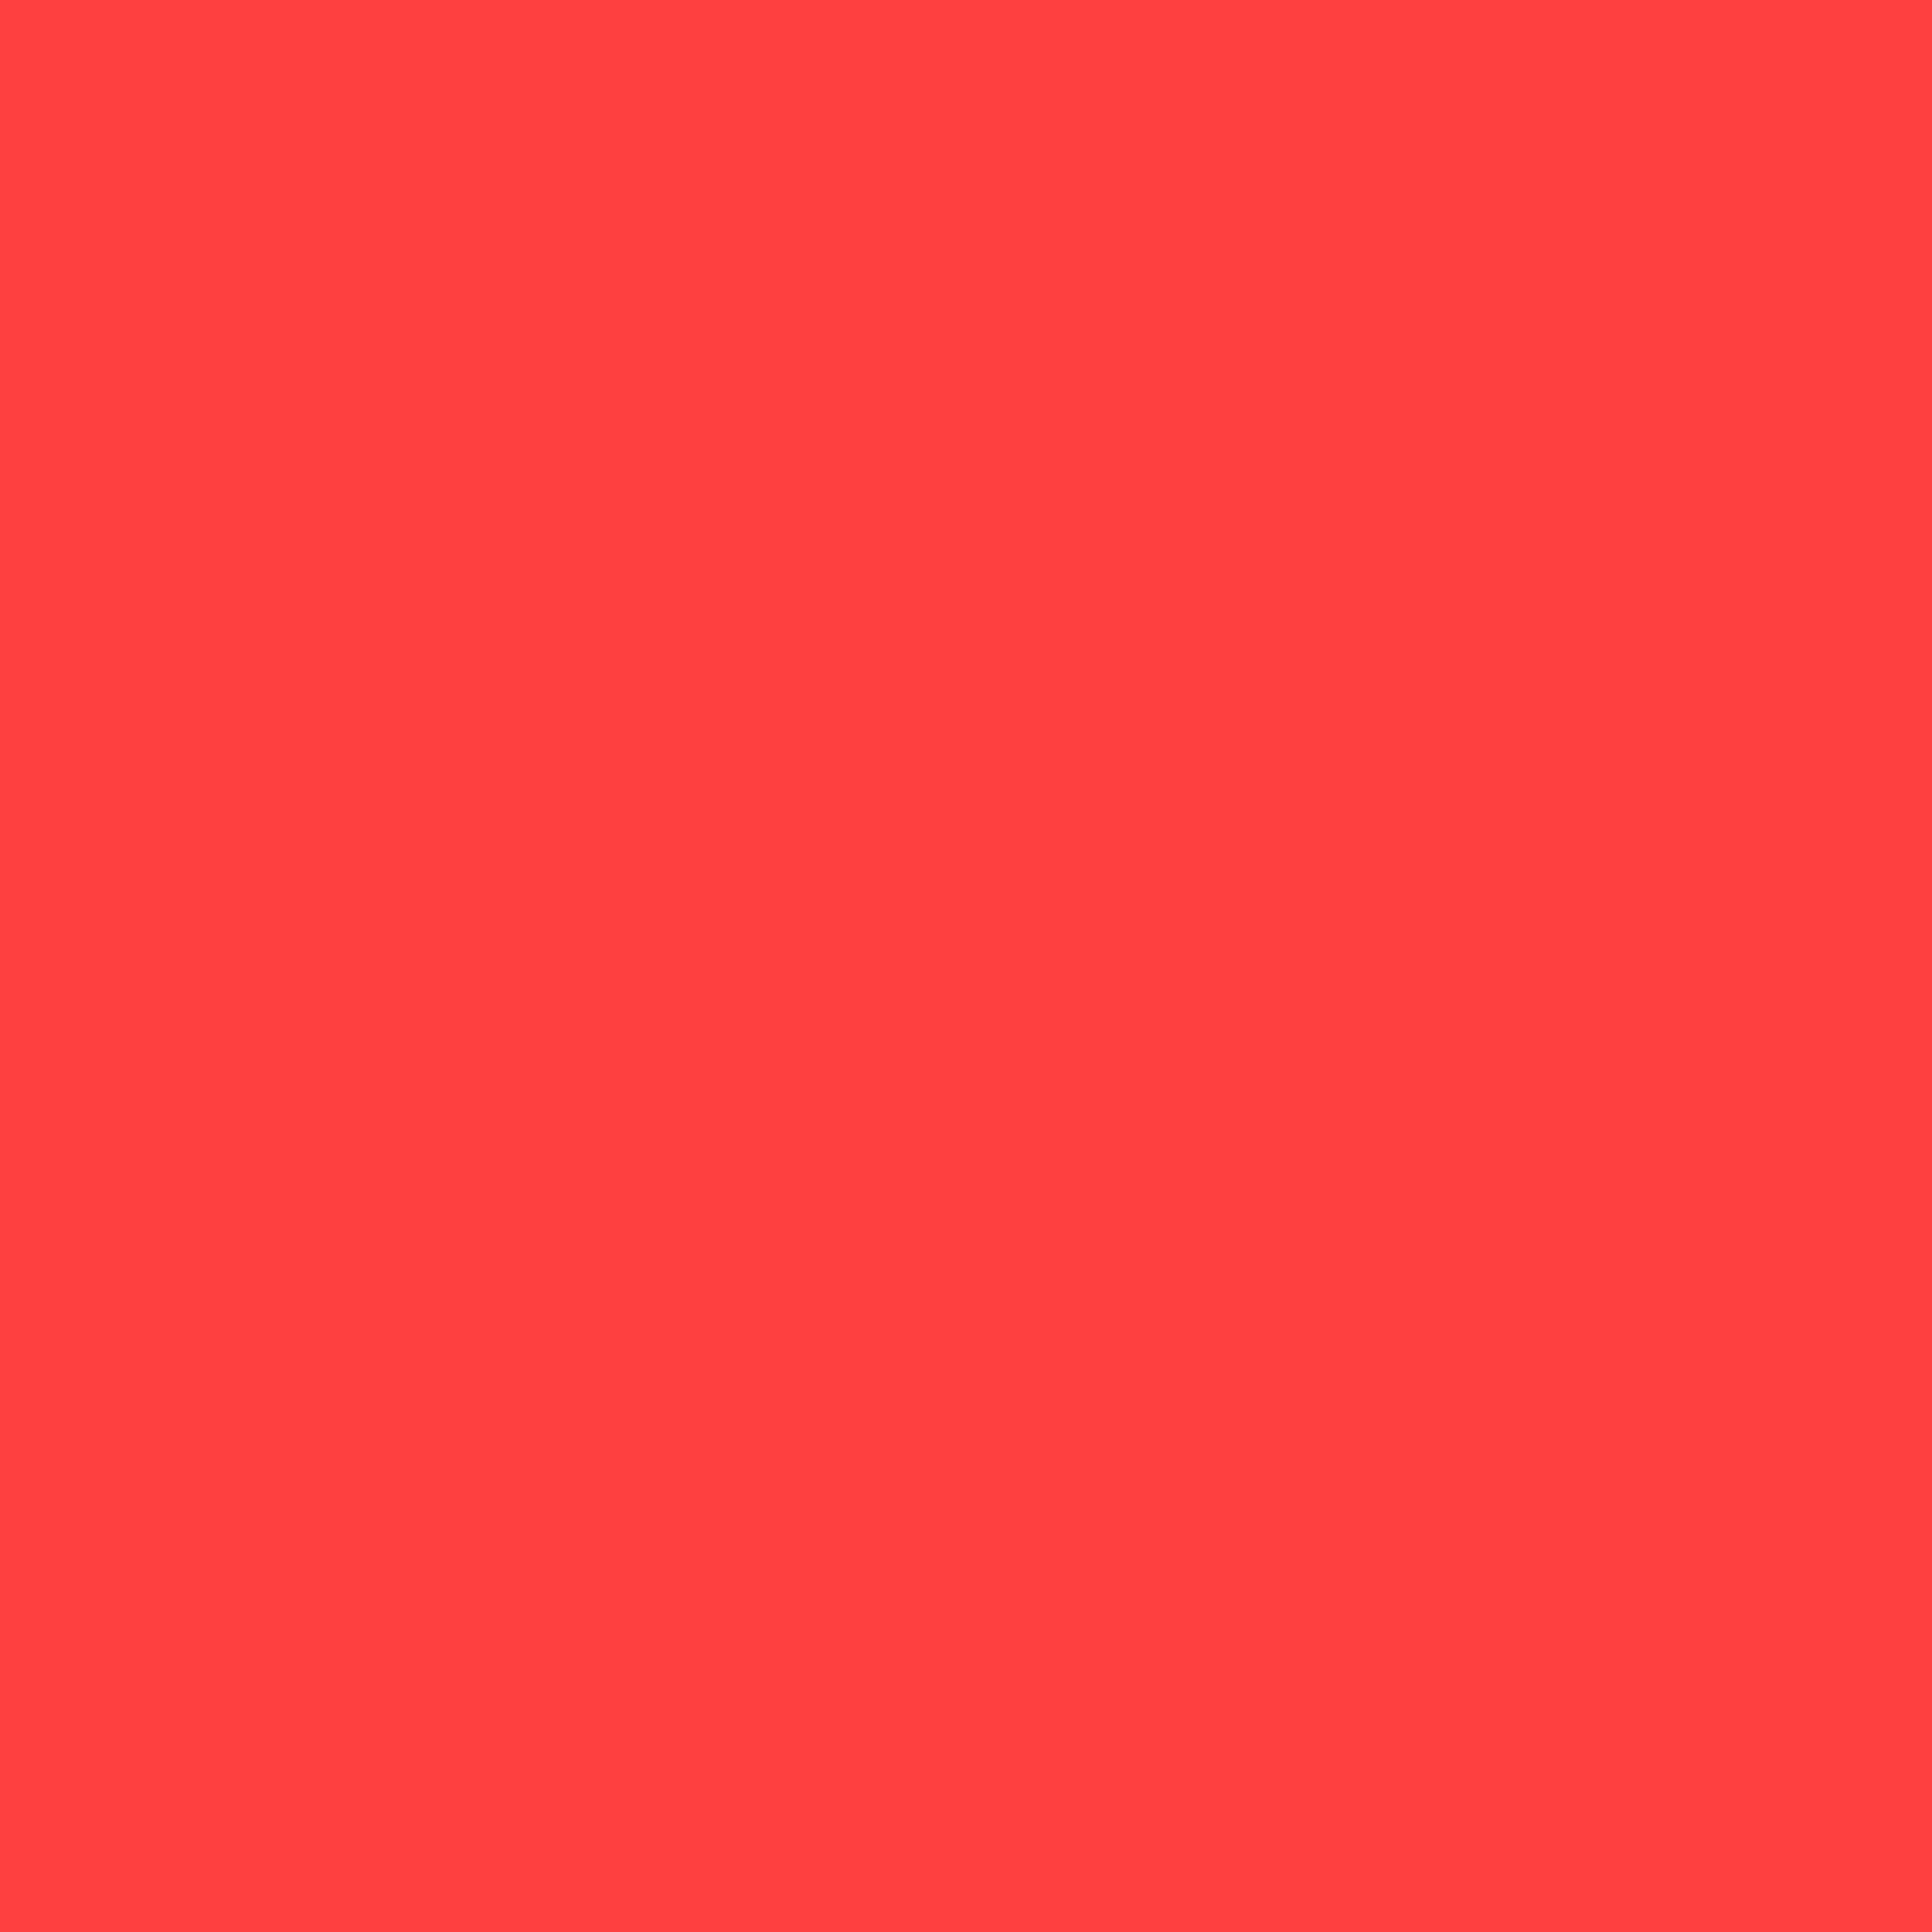 3600x3600 Coral Red Solid Color Background